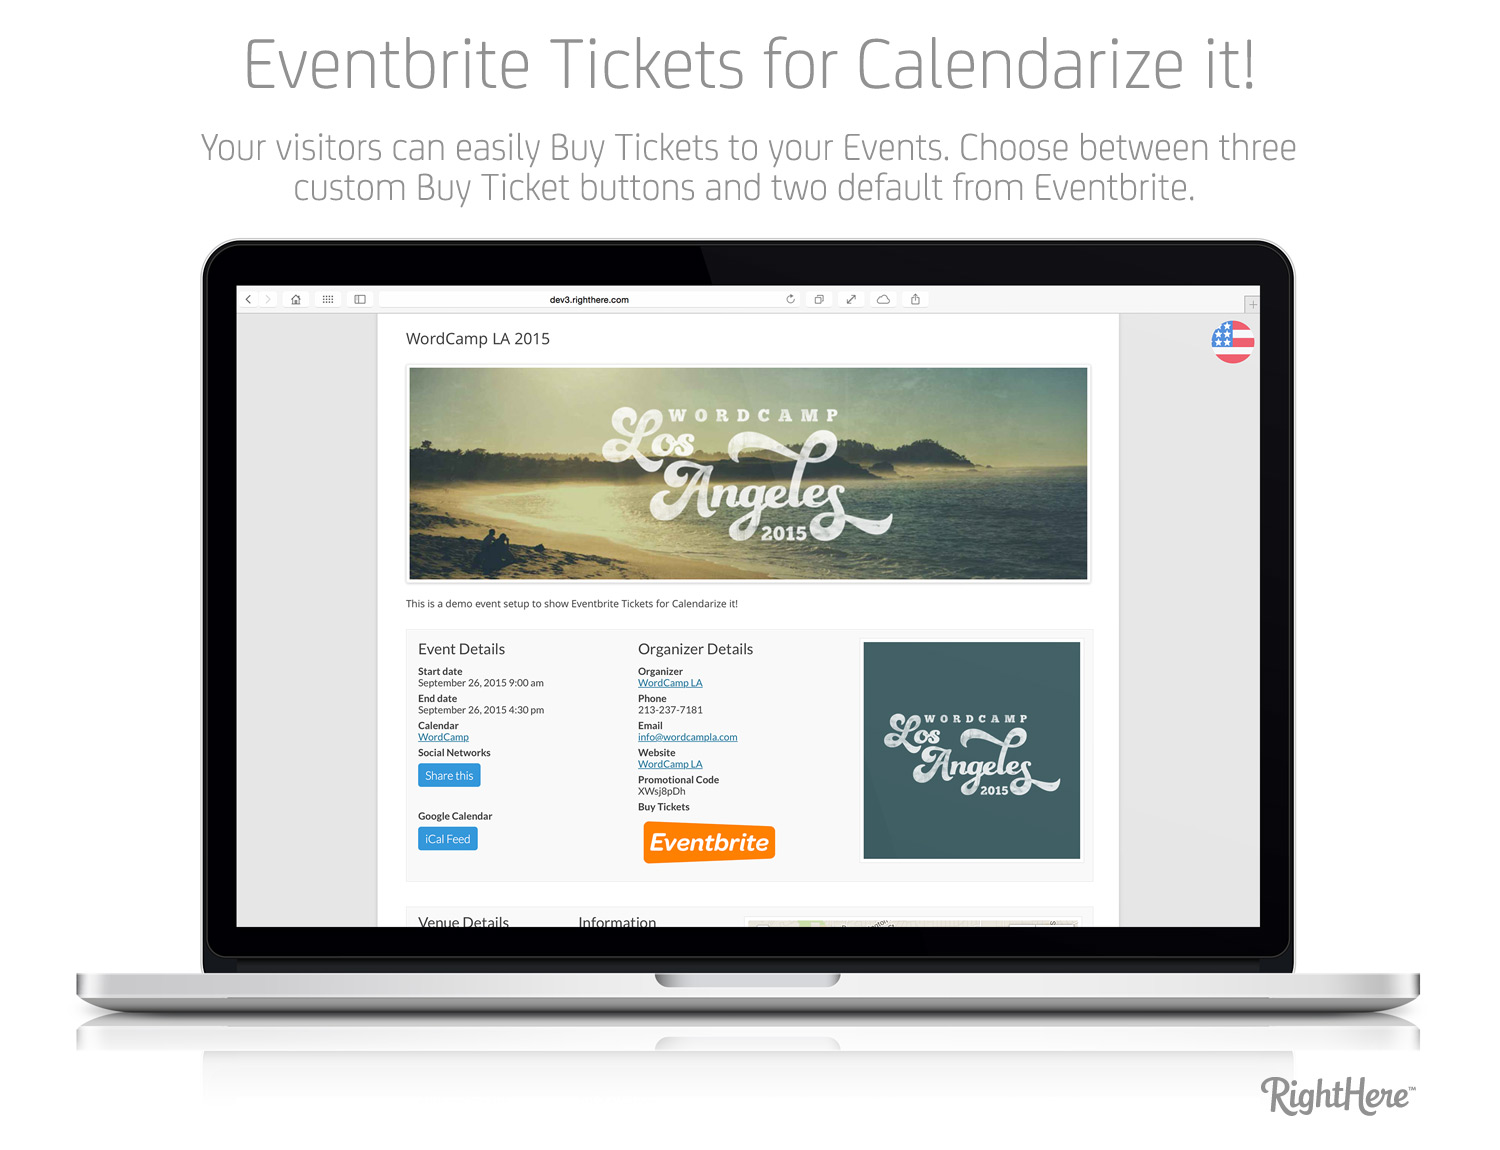 Eventbrite Tickets for Calendarize it! - Event Details Page